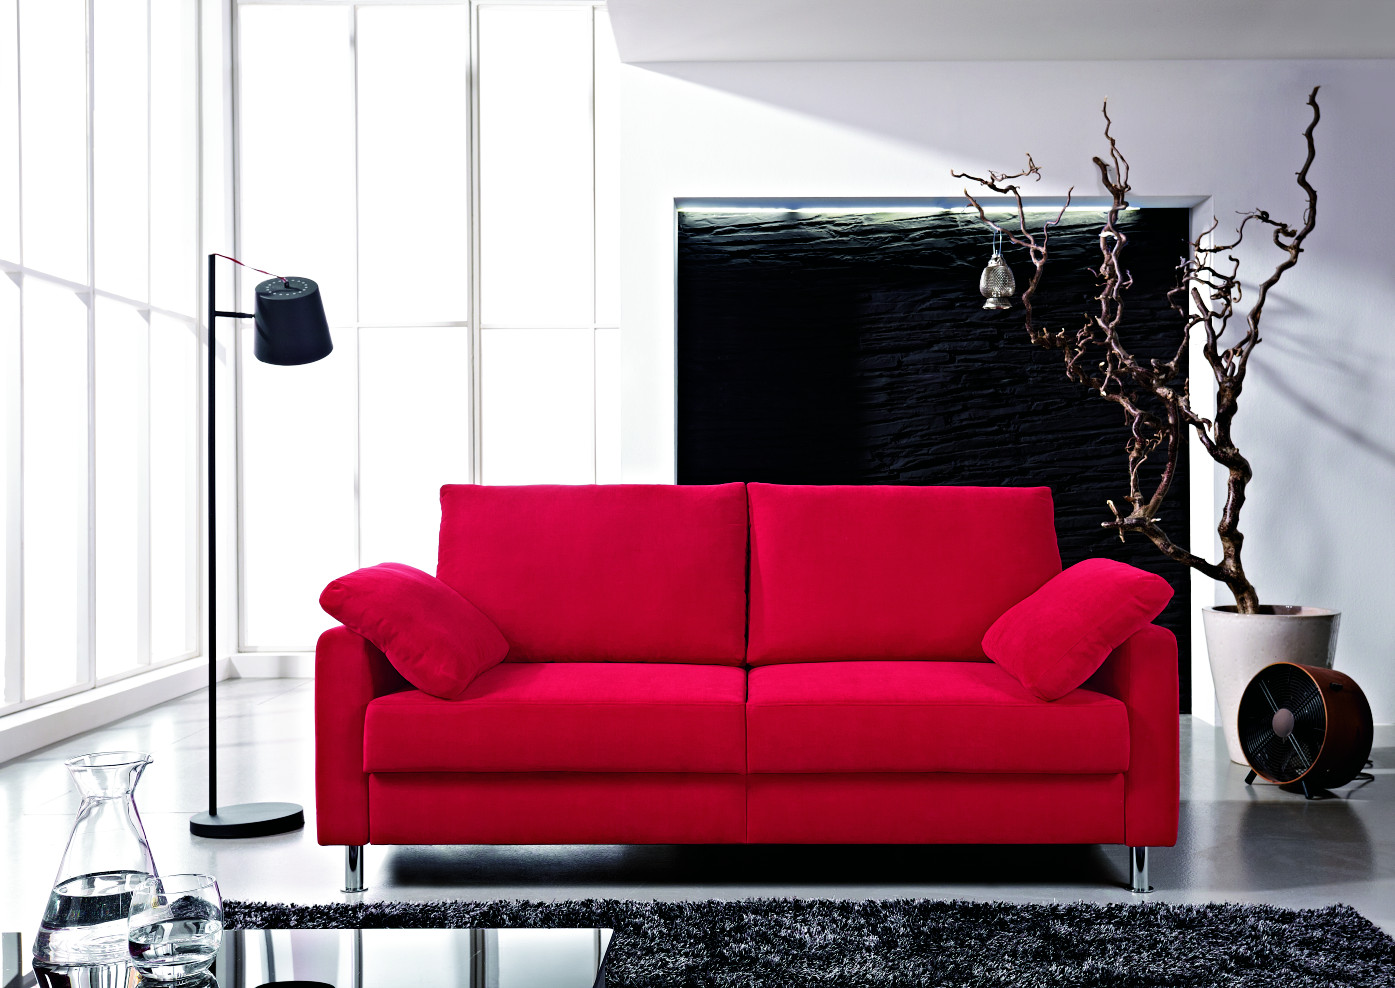 stoffsofas sofas wohnzimmer m bel m bel fischer. Black Bedroom Furniture Sets. Home Design Ideas